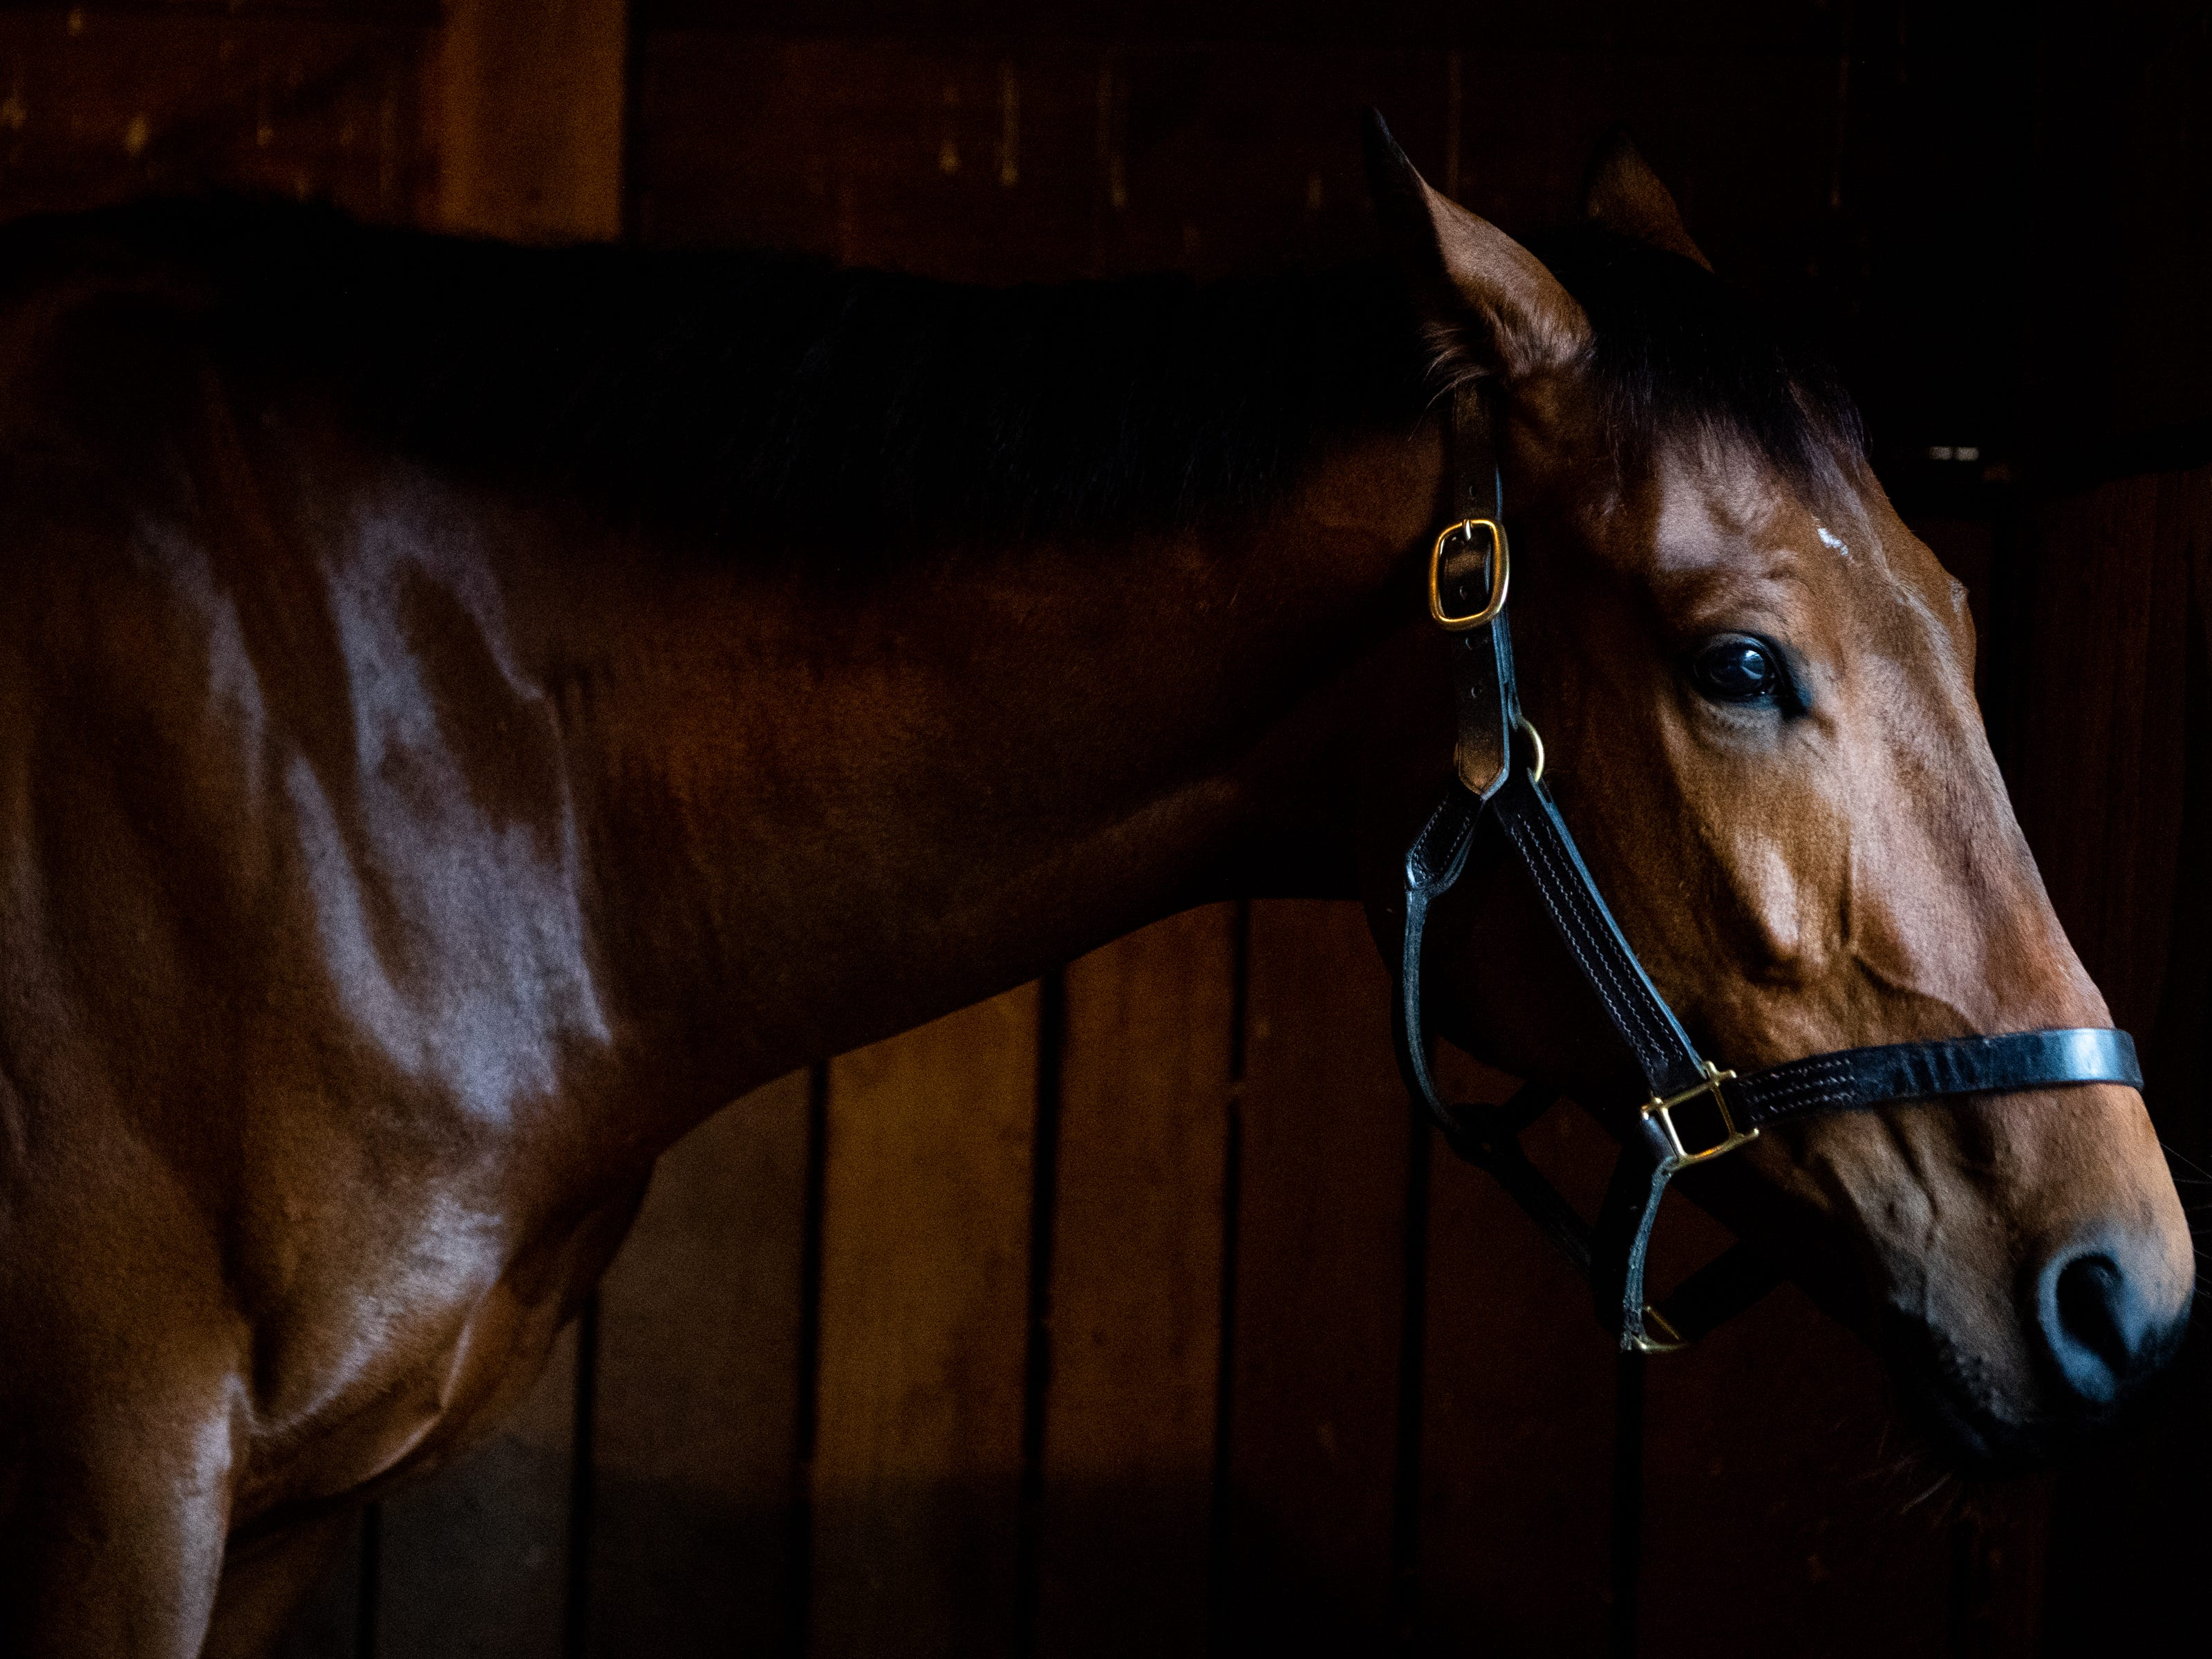 Gabe Breeze waits in the stables during the Iroquois Steeplechase at Percy Warner Park Saturday, May 11, 2019, in Nashville, Tenn.